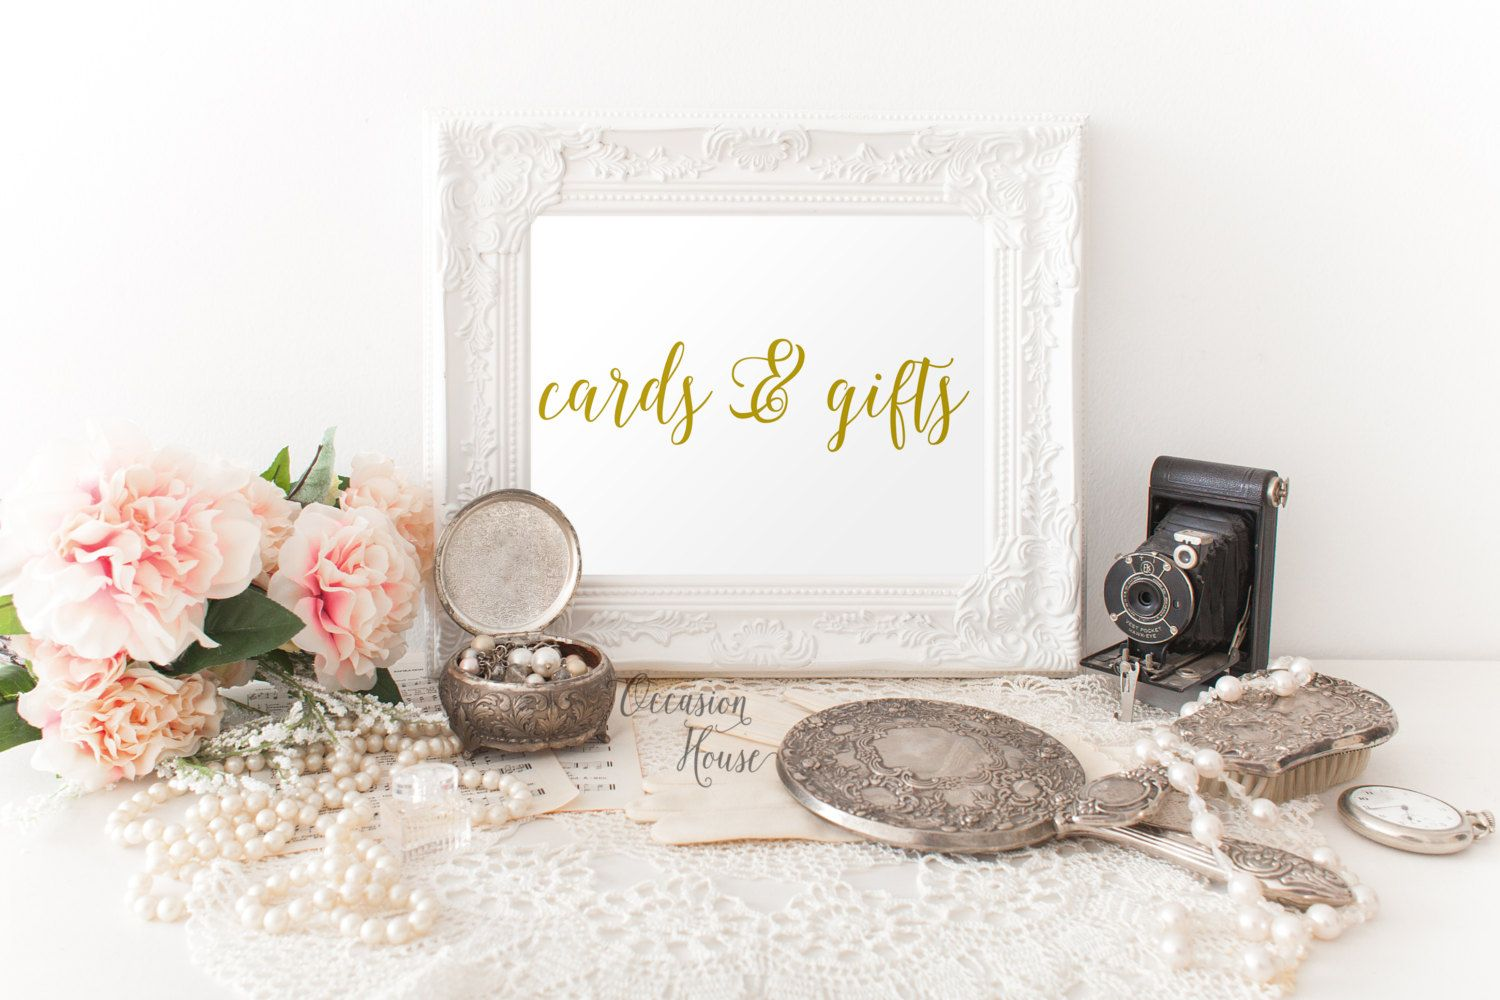 Printable wedding signs, Cards and gifts signs, 5x7, gold lettered wedding sign, wedding signage, wedding decor, INSTANT DOWNLOAD by OccasionHouse on Etsy